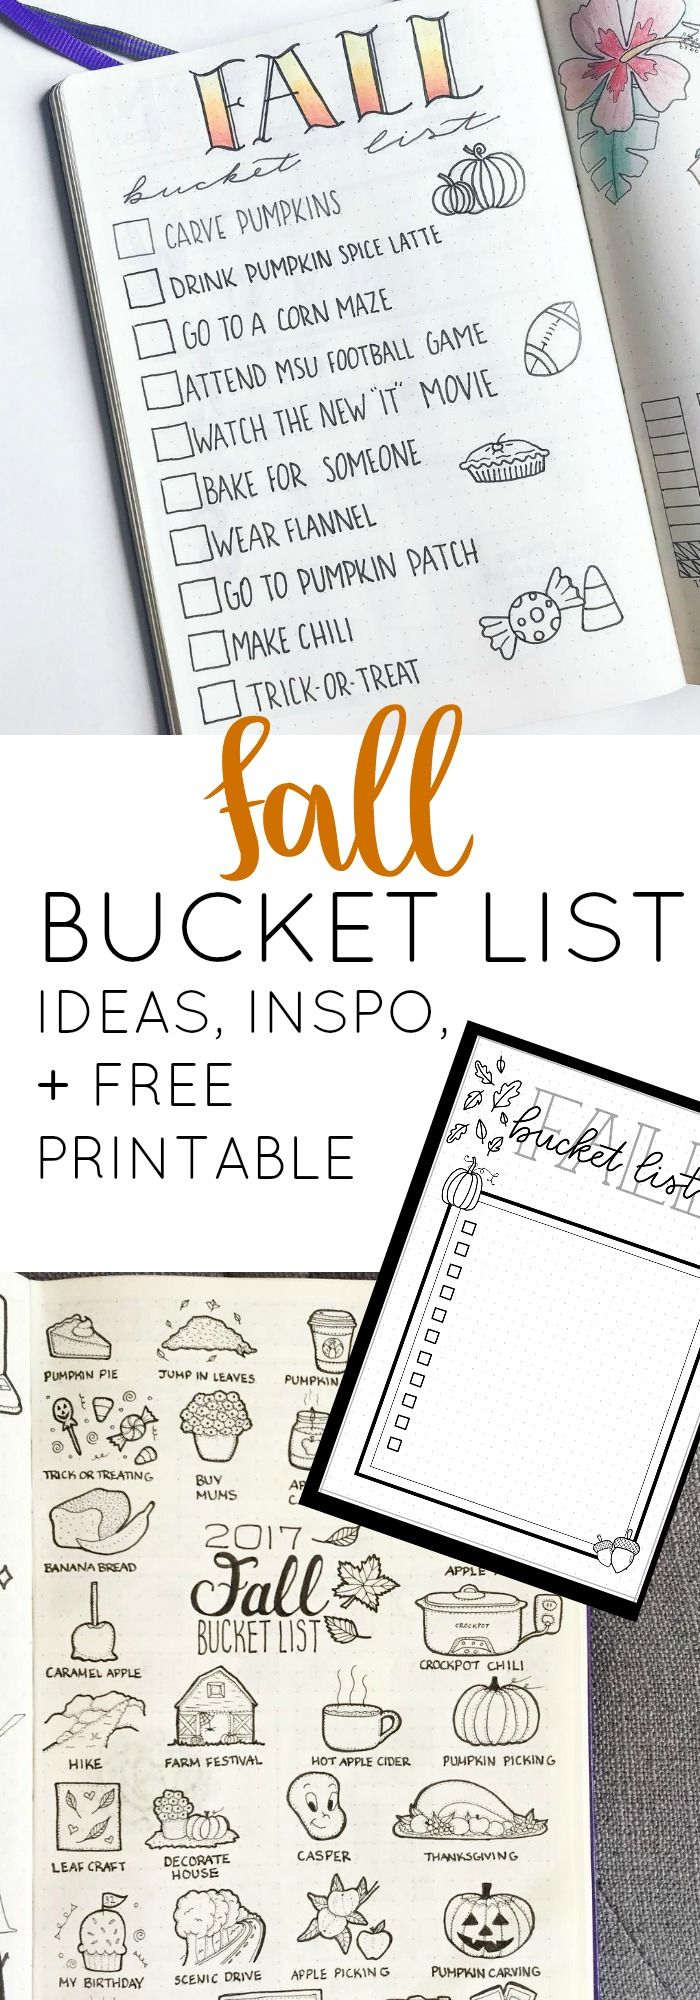 Fall Bucket List Inspiration for Your Bullet Journal + FREE Printable ⋆ The Petite Planner